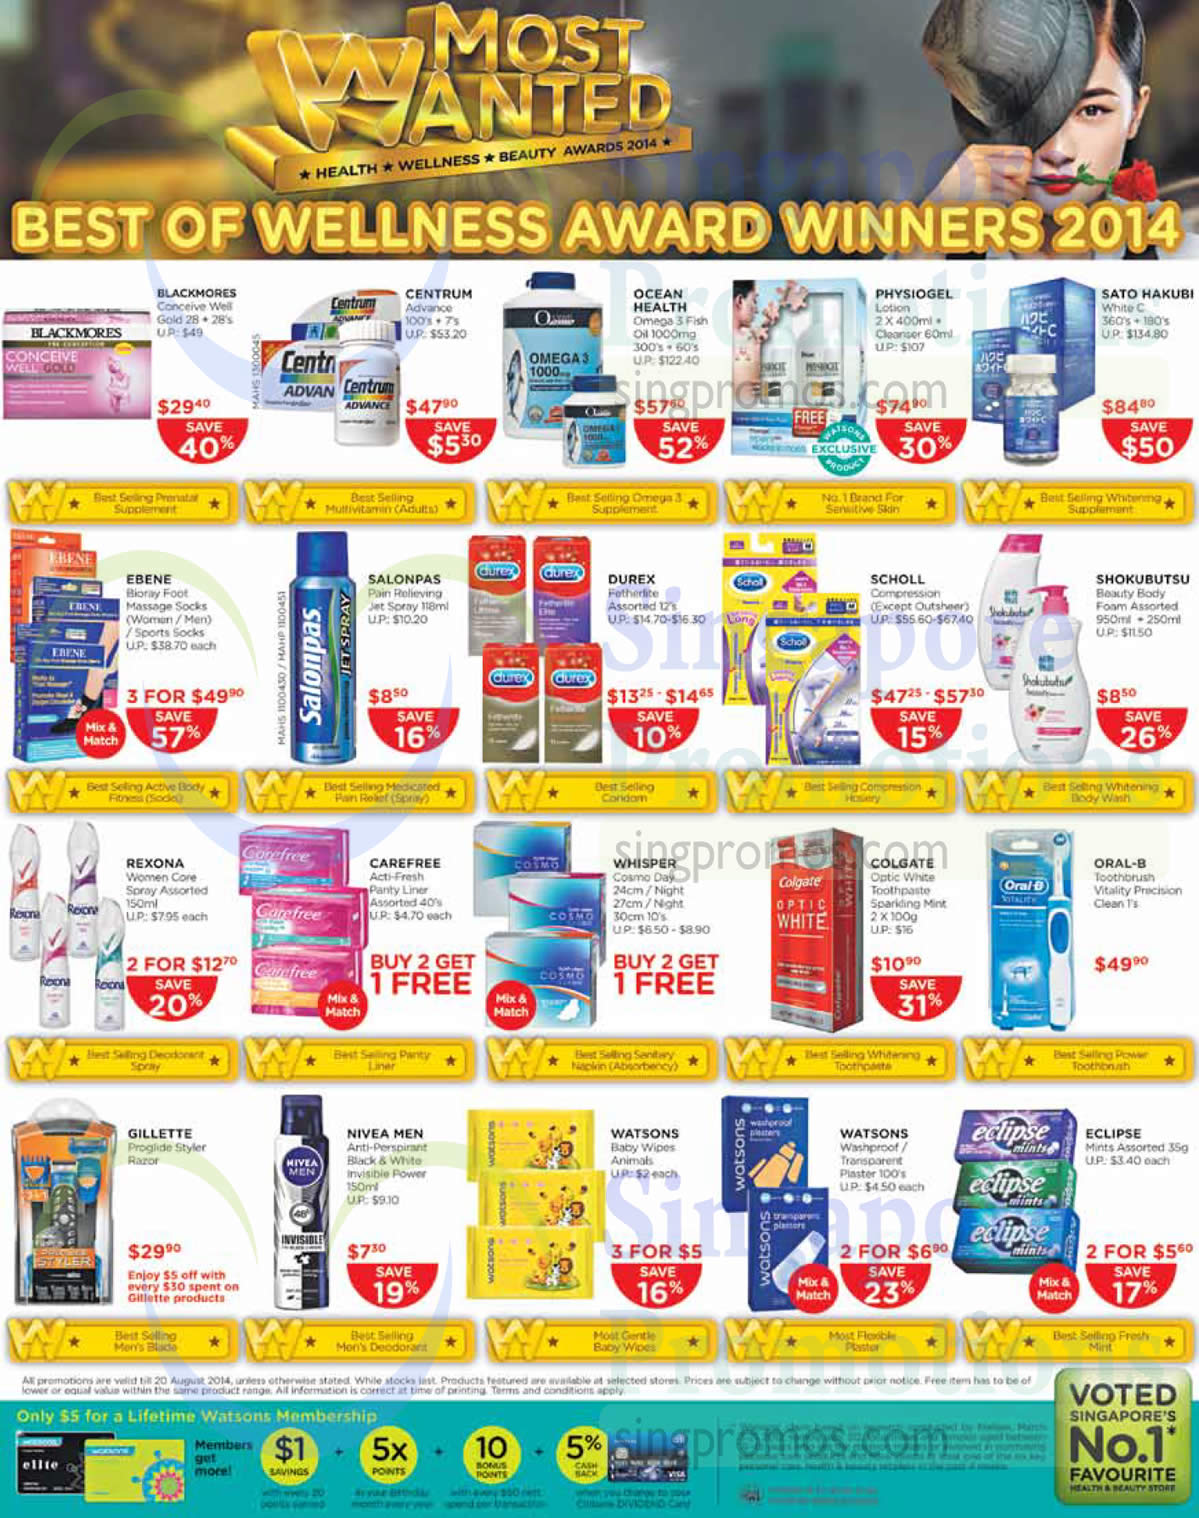 Centrum Advance, Ocean Health Omega 3 Fish Oil, Physiogel Lotion, Sato Hakubi White C, Oral-B Toothbrush Vitality Precision Clean